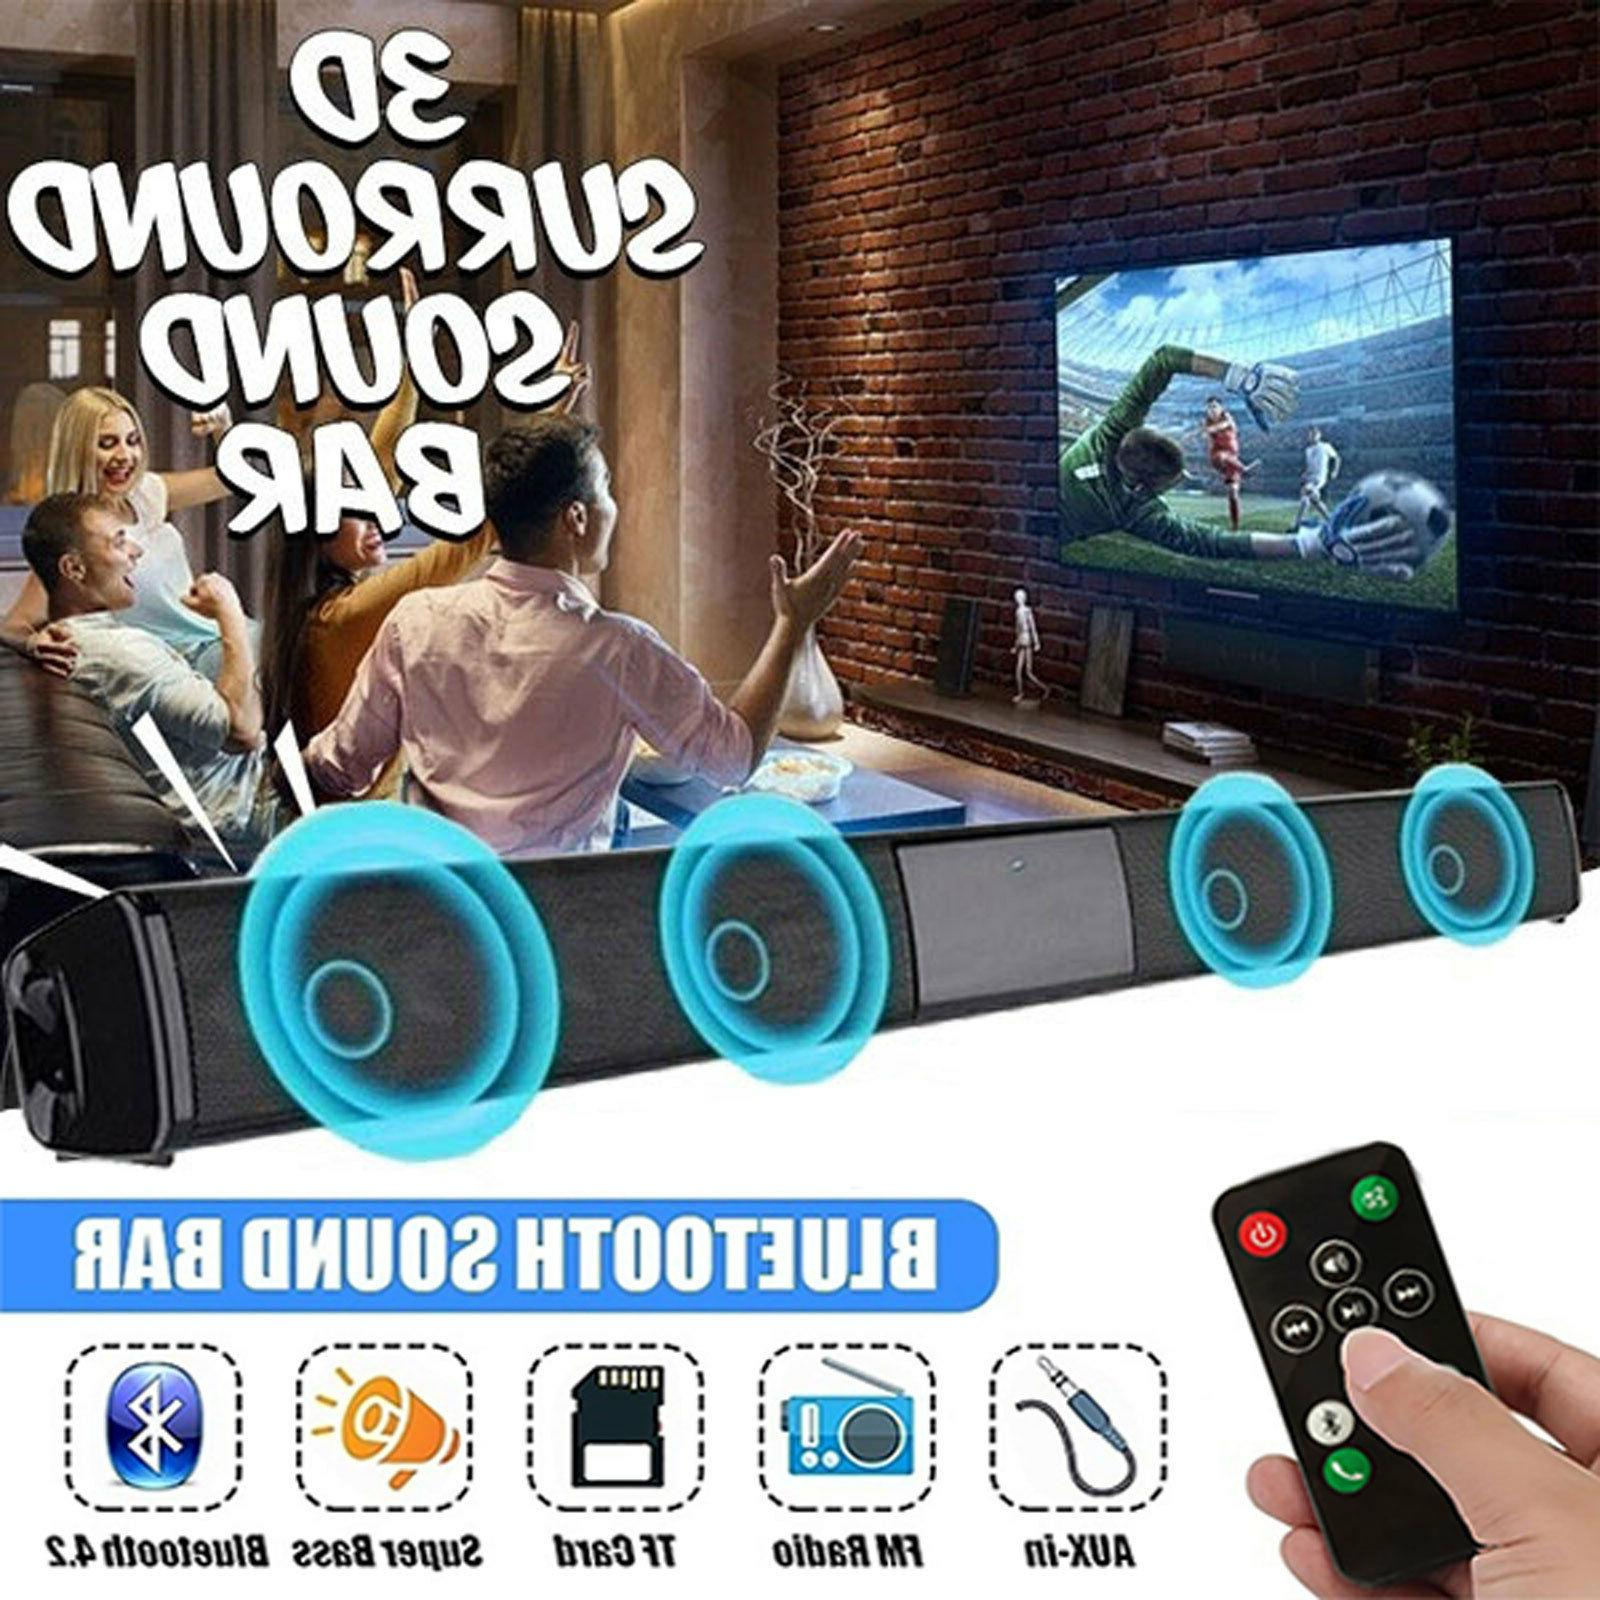 21.65inch 3D Surround Sound Bar with Wireless 4.0 Channel TV